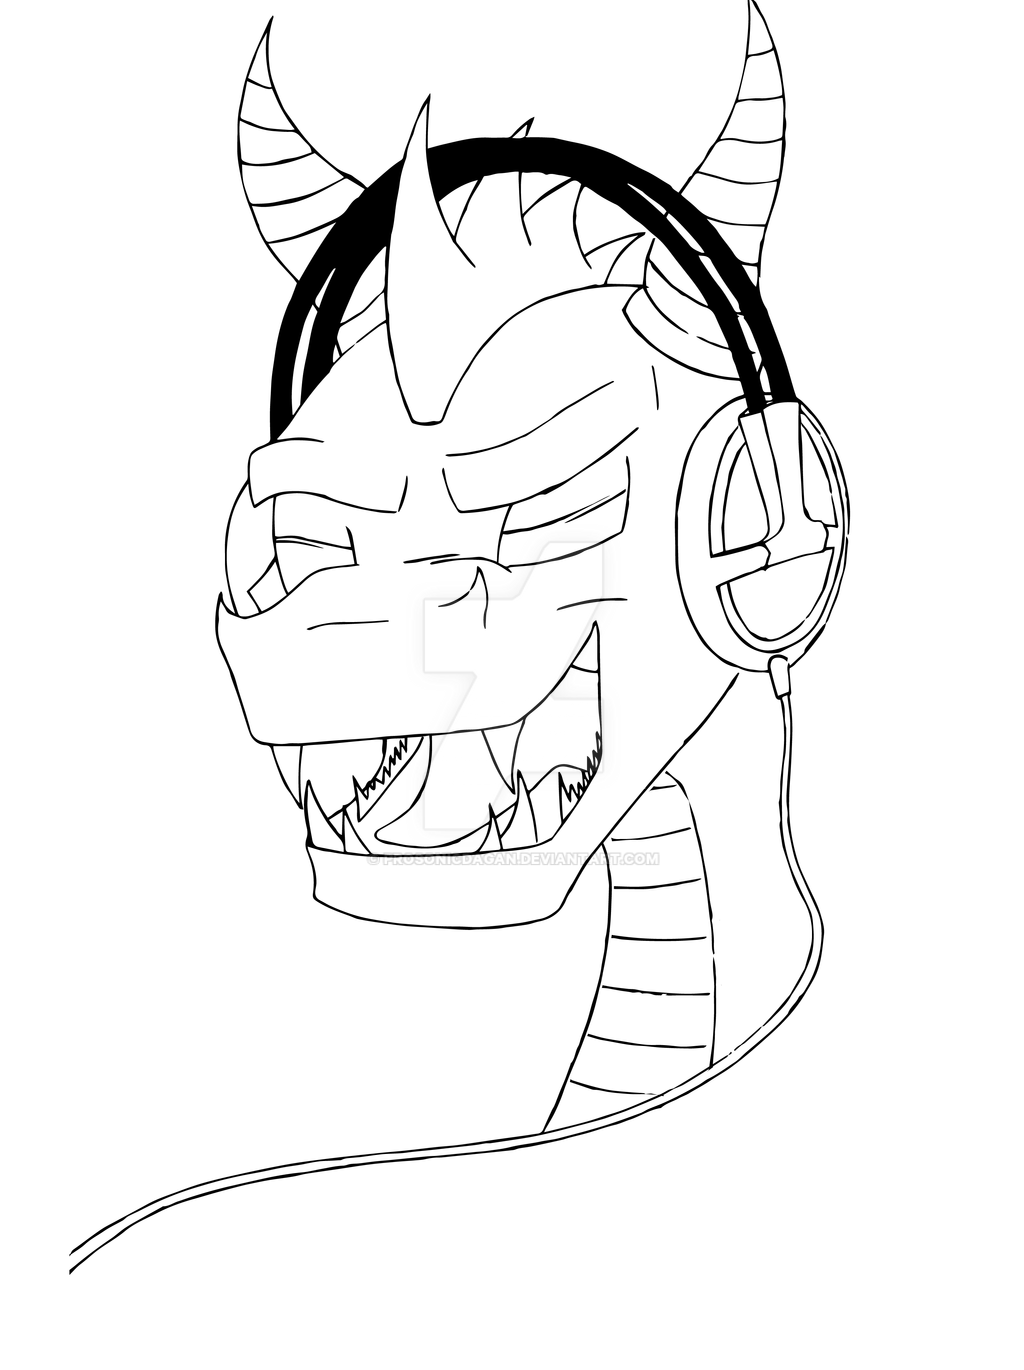 Line Art Headphones : Spyro the dragon headphones line drawing by prosonicdagan